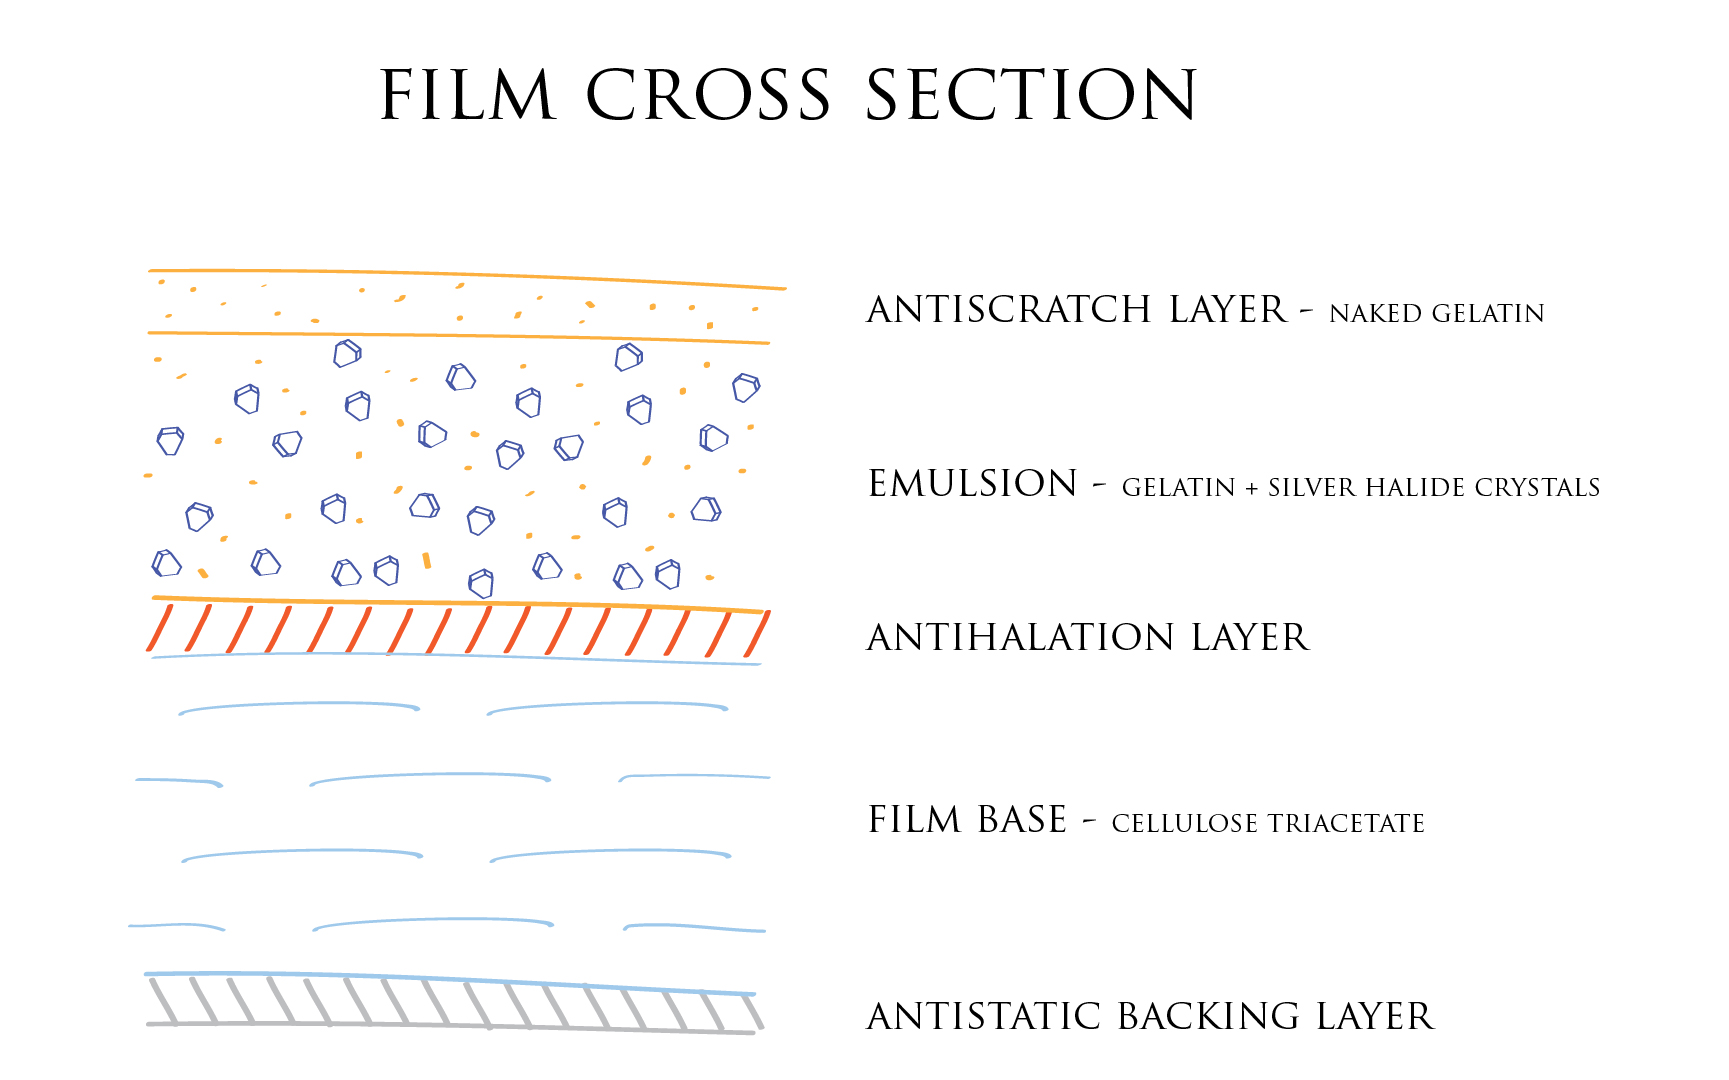 Illustration: photographic film cross section